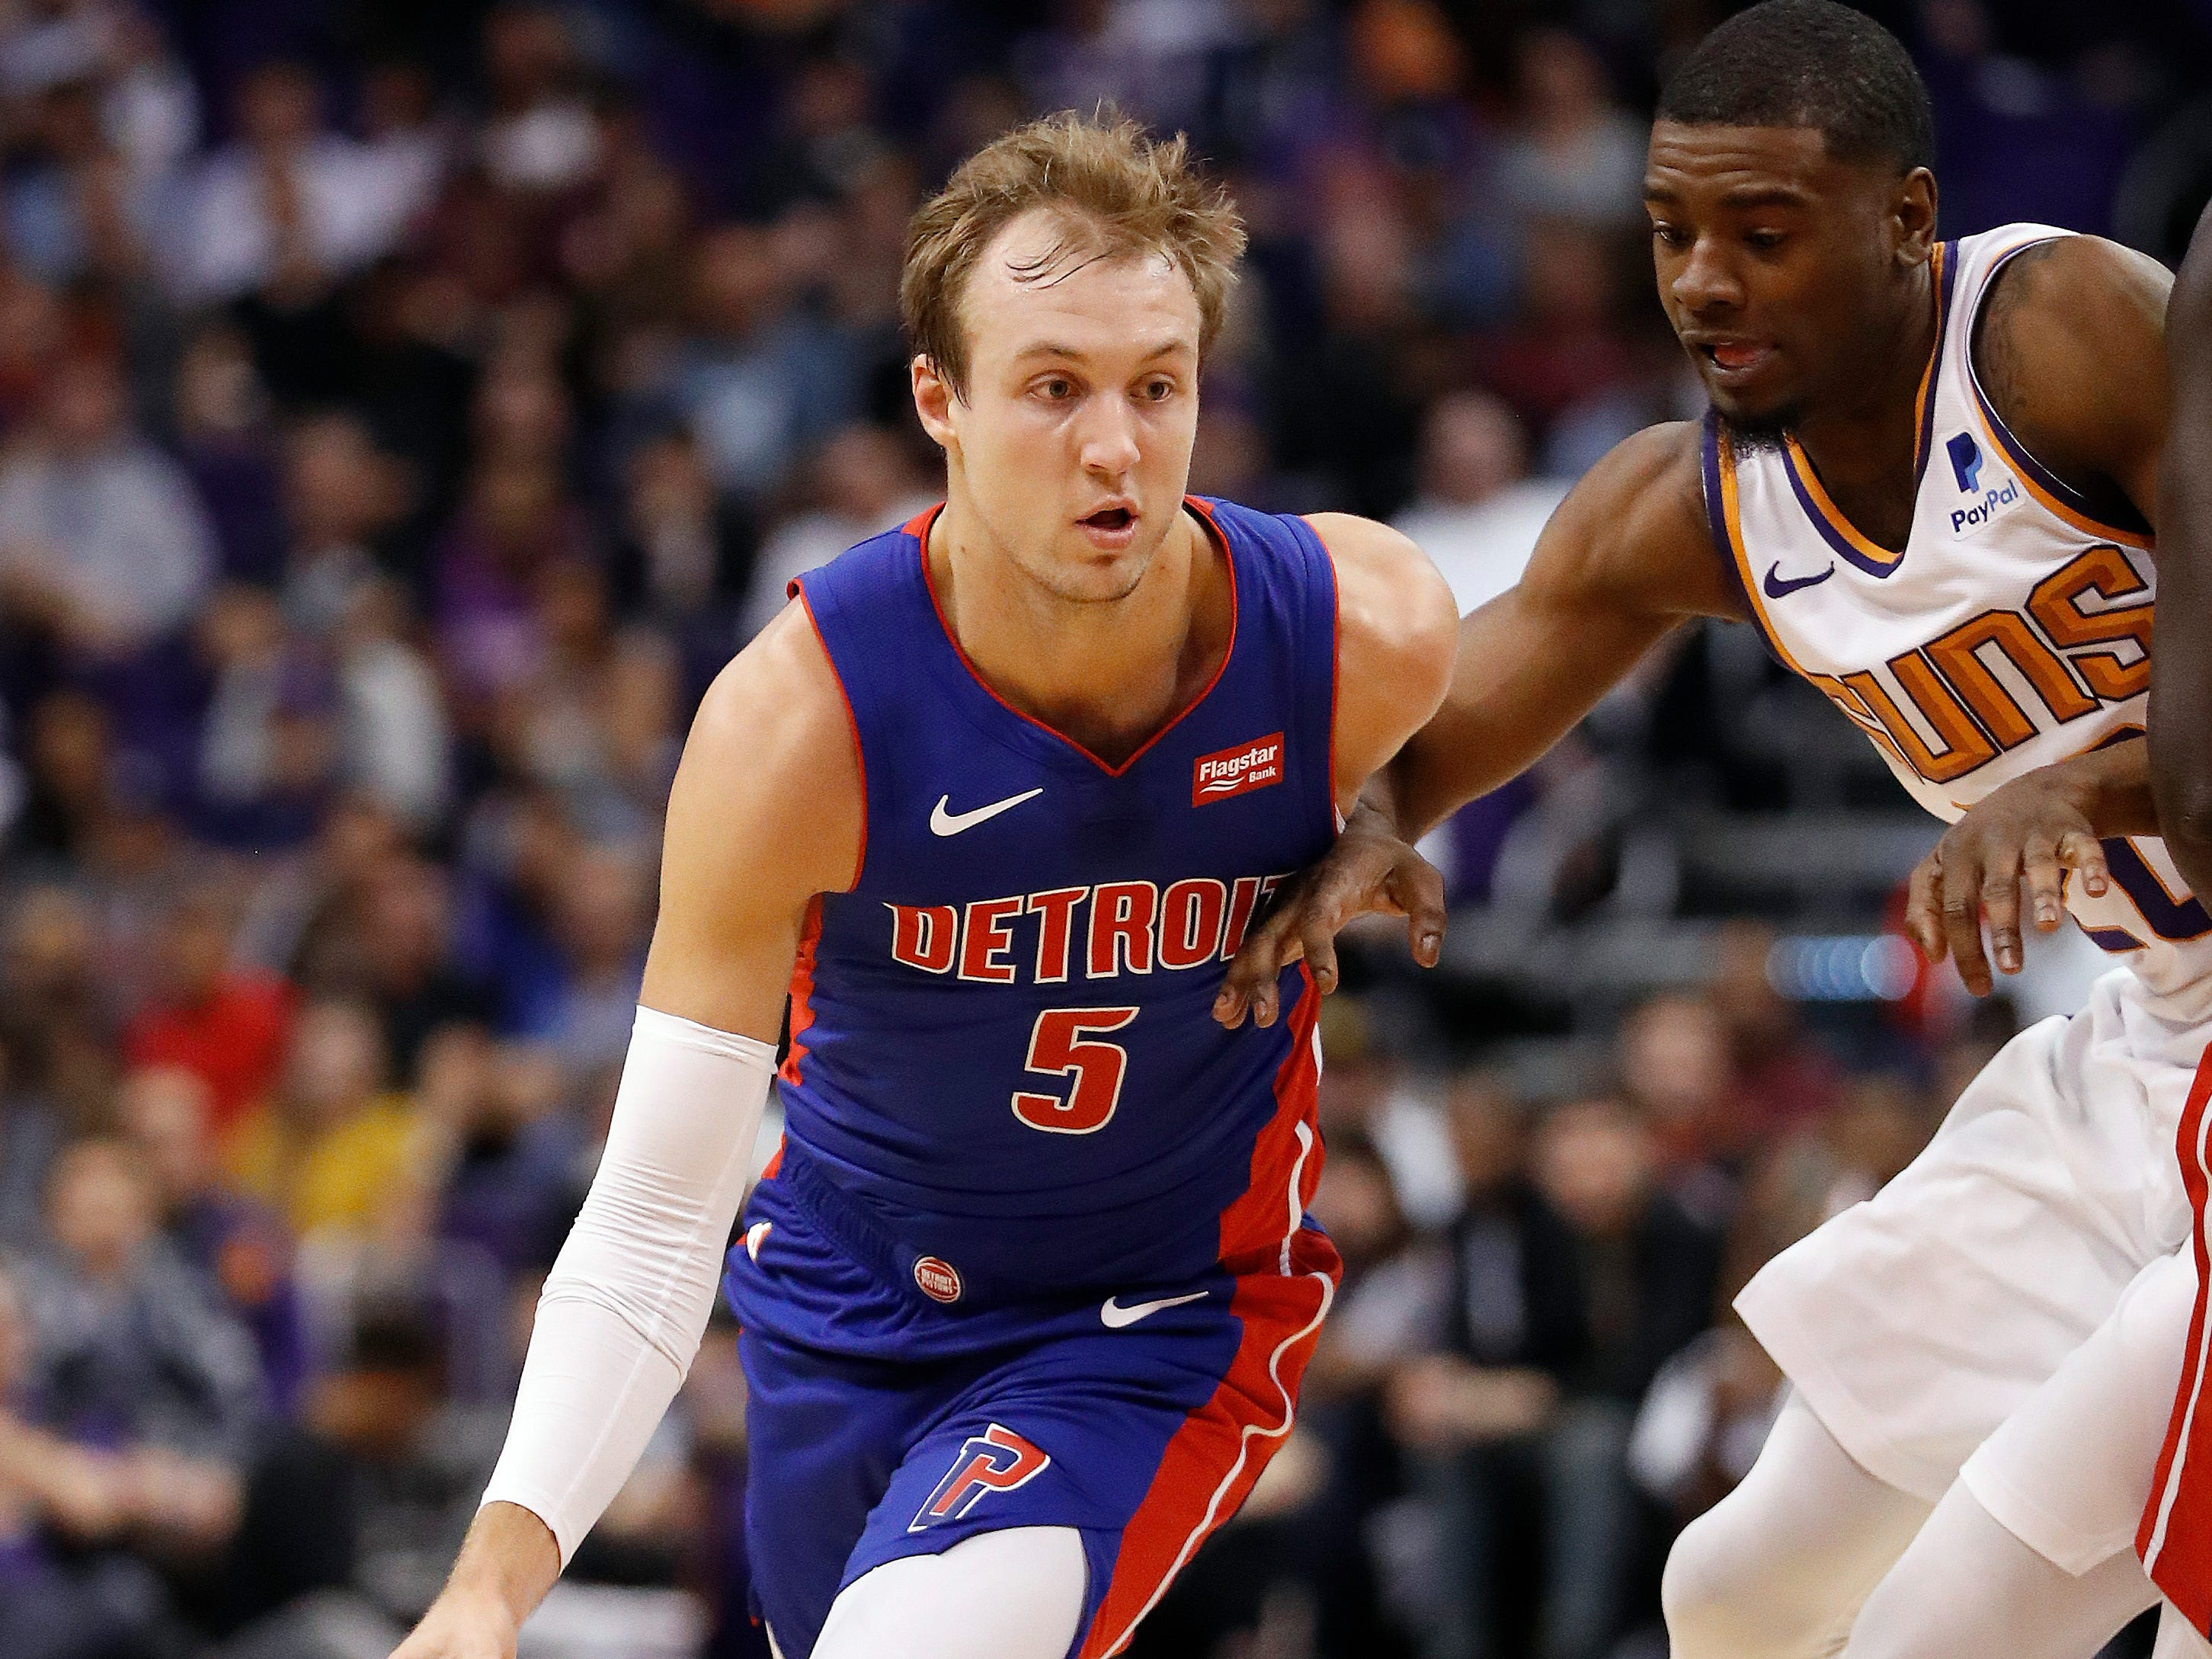 Detroit Pistons guard Luke Kennard (5) dries against the Phoenix Suns during the first half of an NBA basketball game, Thursday, March 21, 2019, in Phoenix.